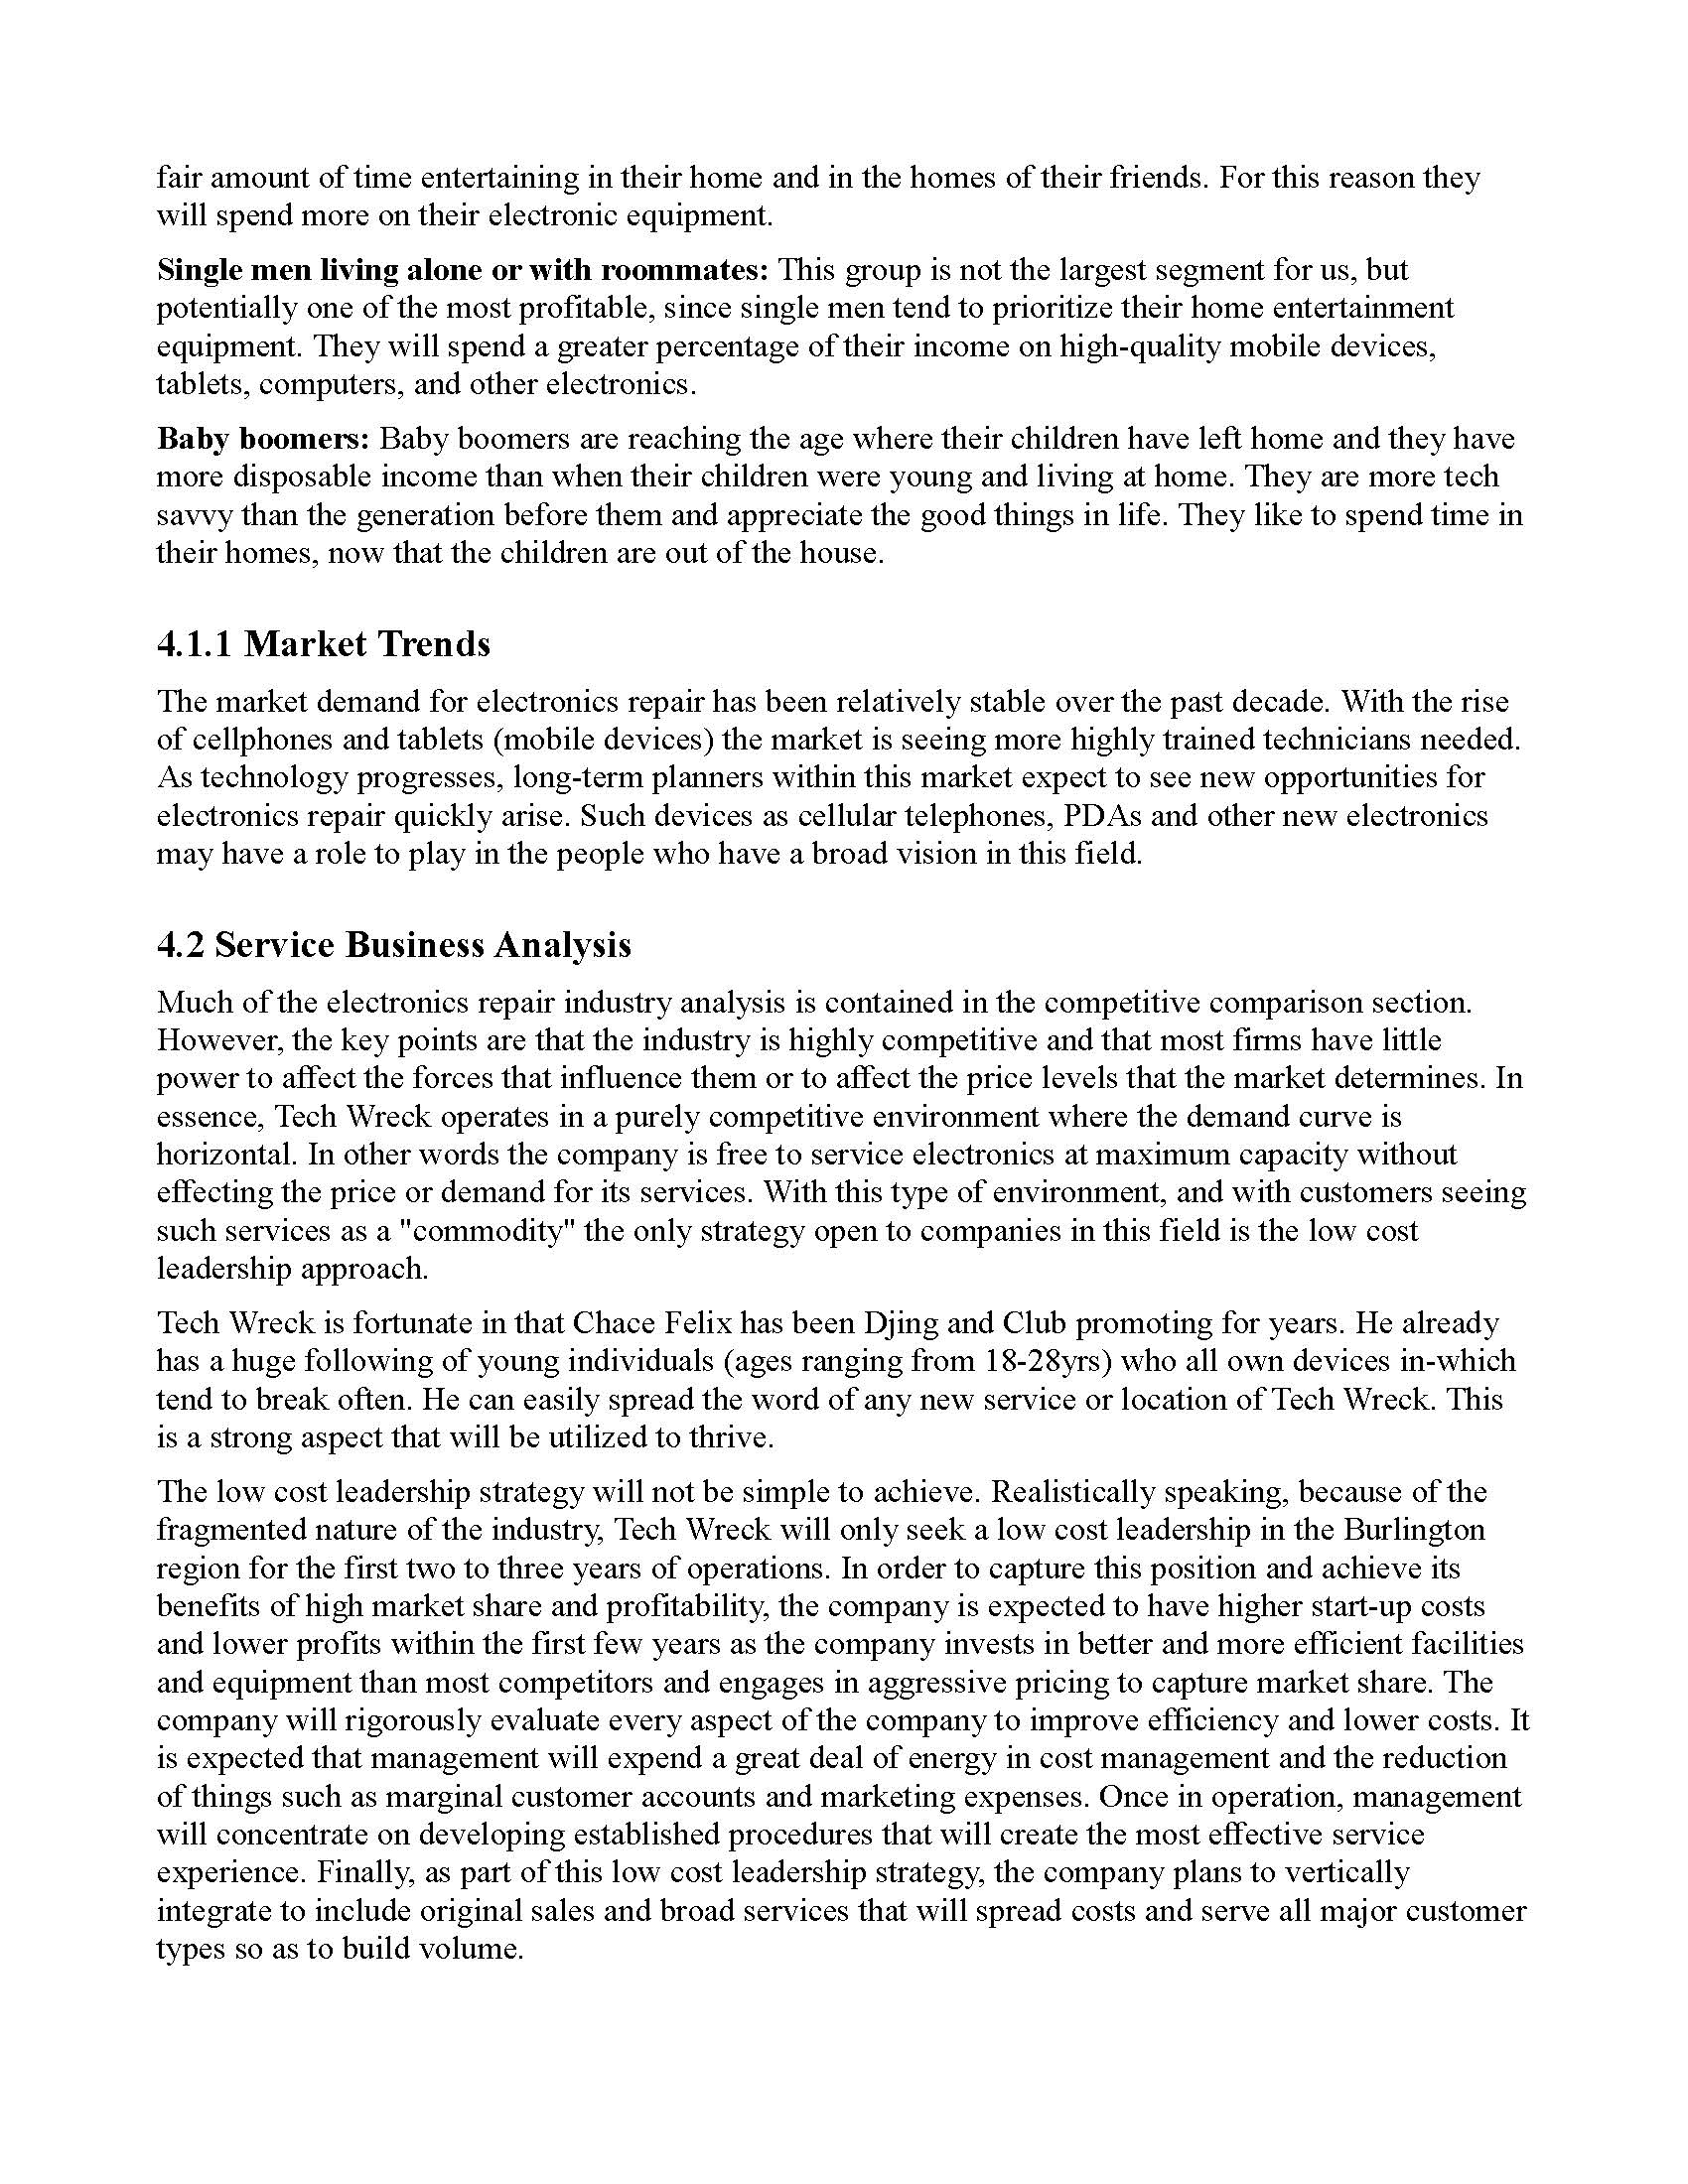 Tech Wreck 3 Year Business Plan_Page_10.jpg